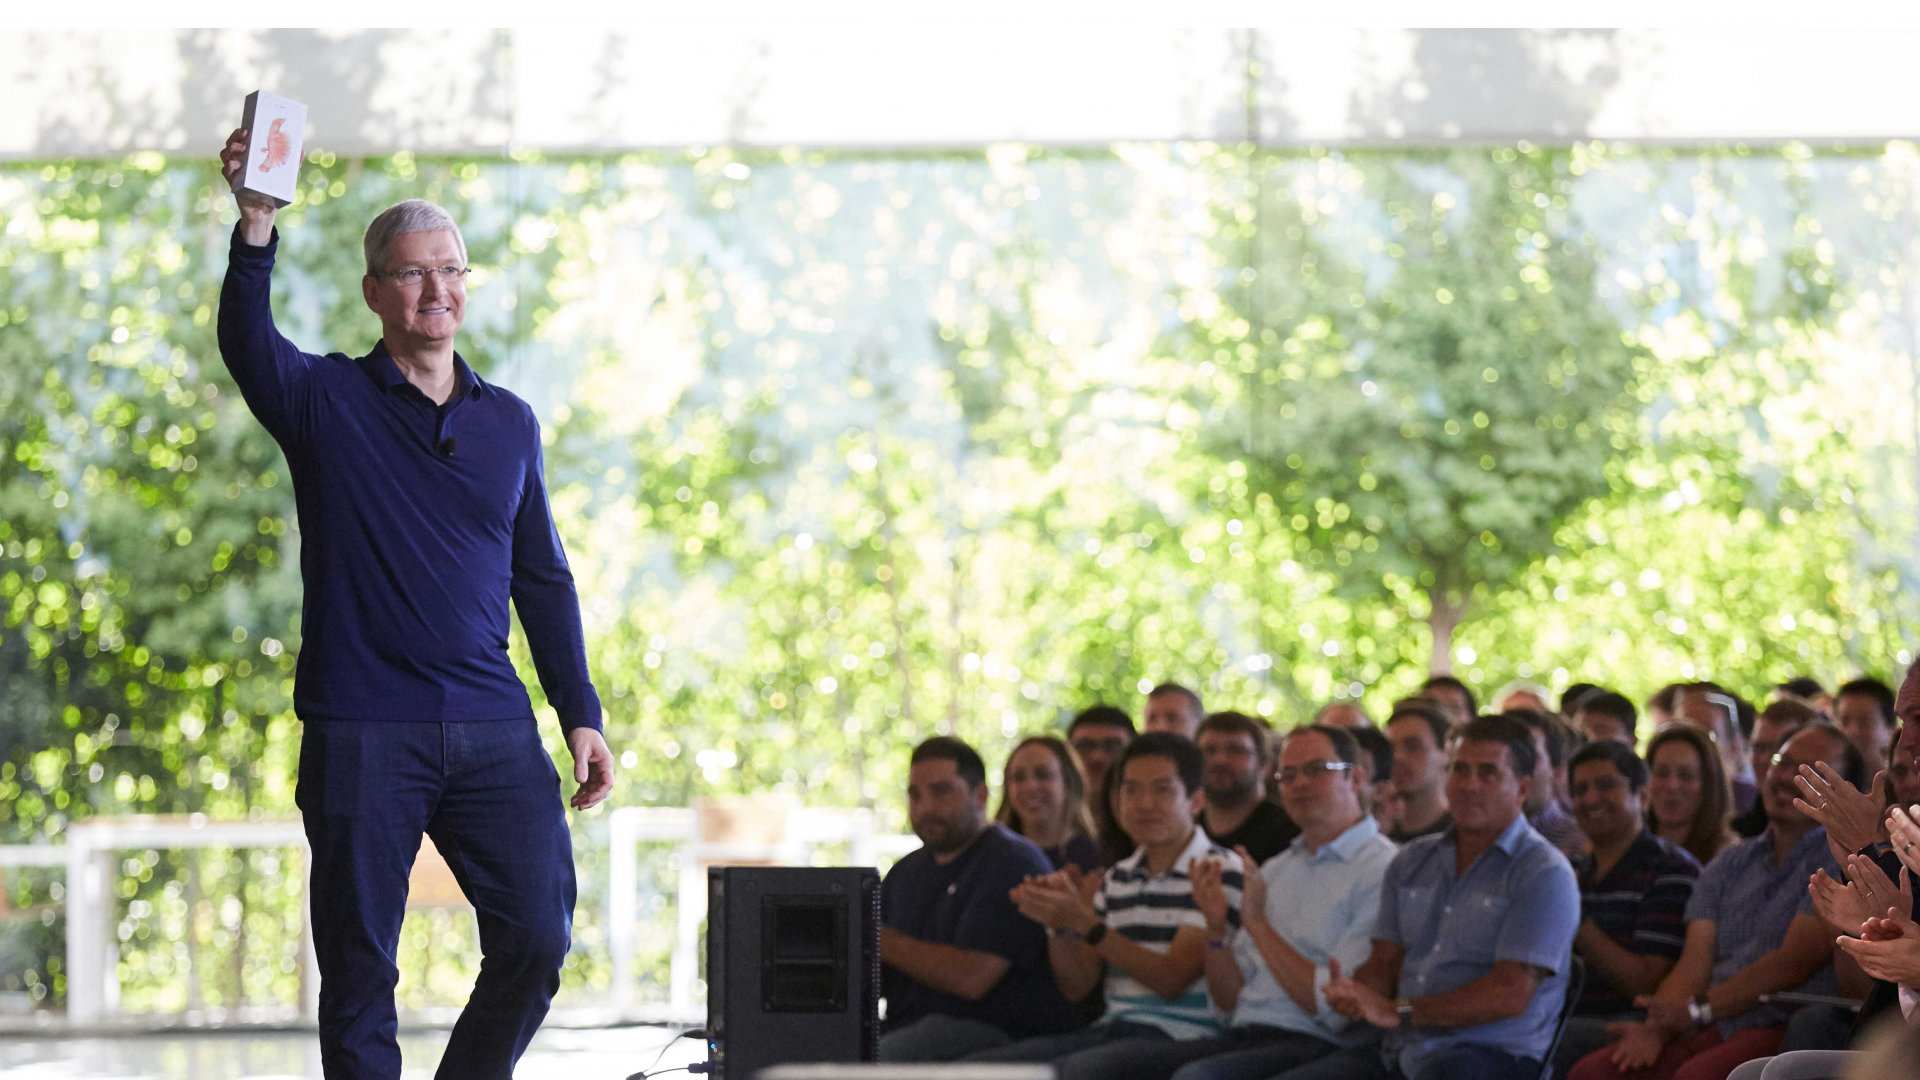 Tim Cook holds the one billionth iPhone, a 6s Plus model, in front of a cheering crowd.